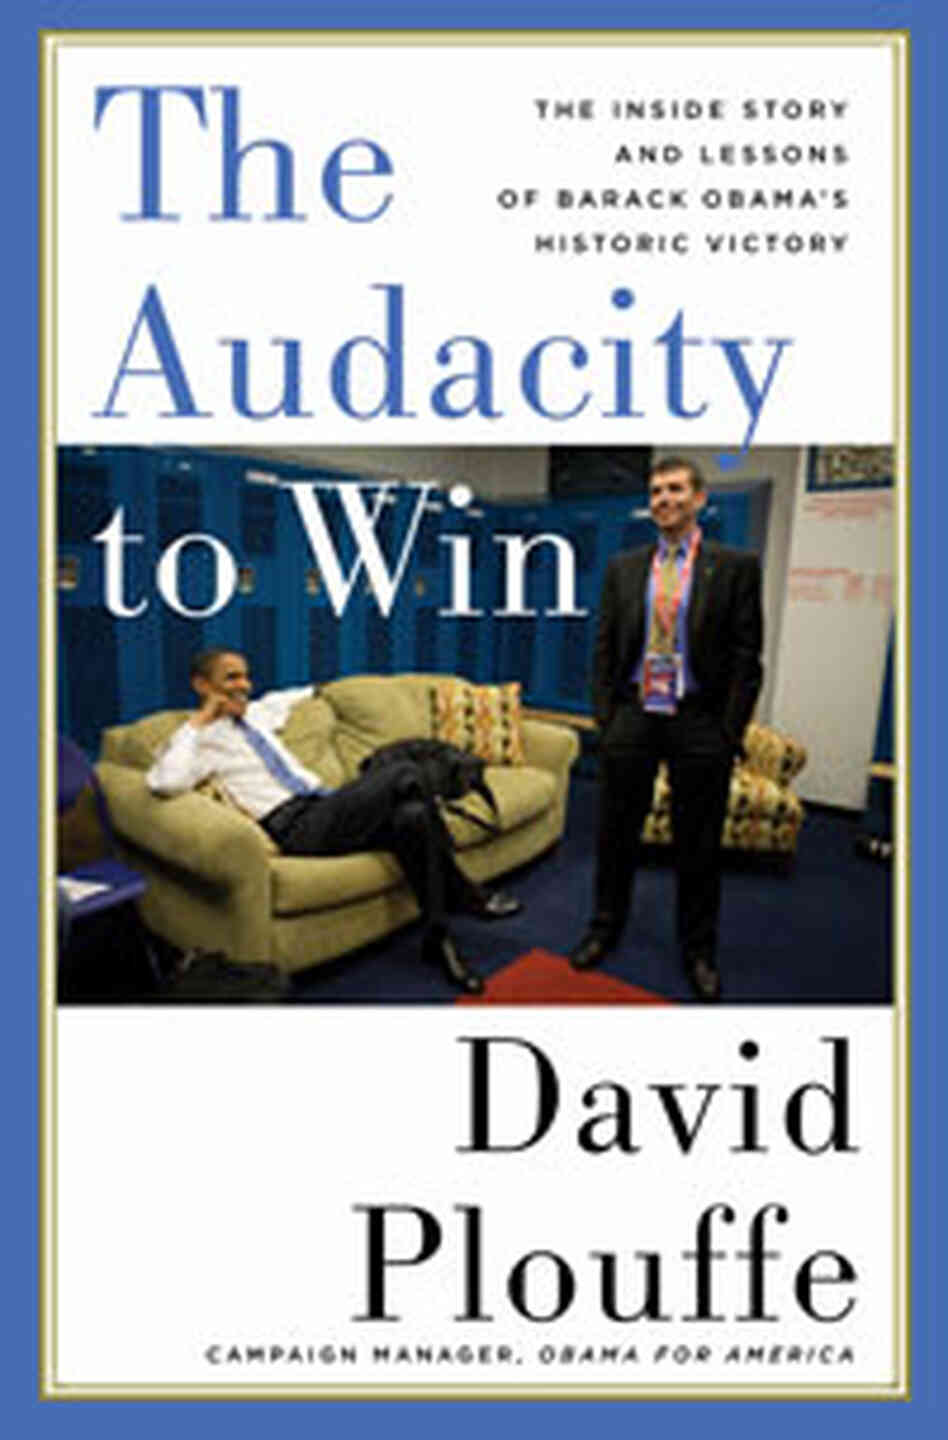 'The Audacity to Win: The Inside Story and Lessons of Barack Obama's Historic Victory'